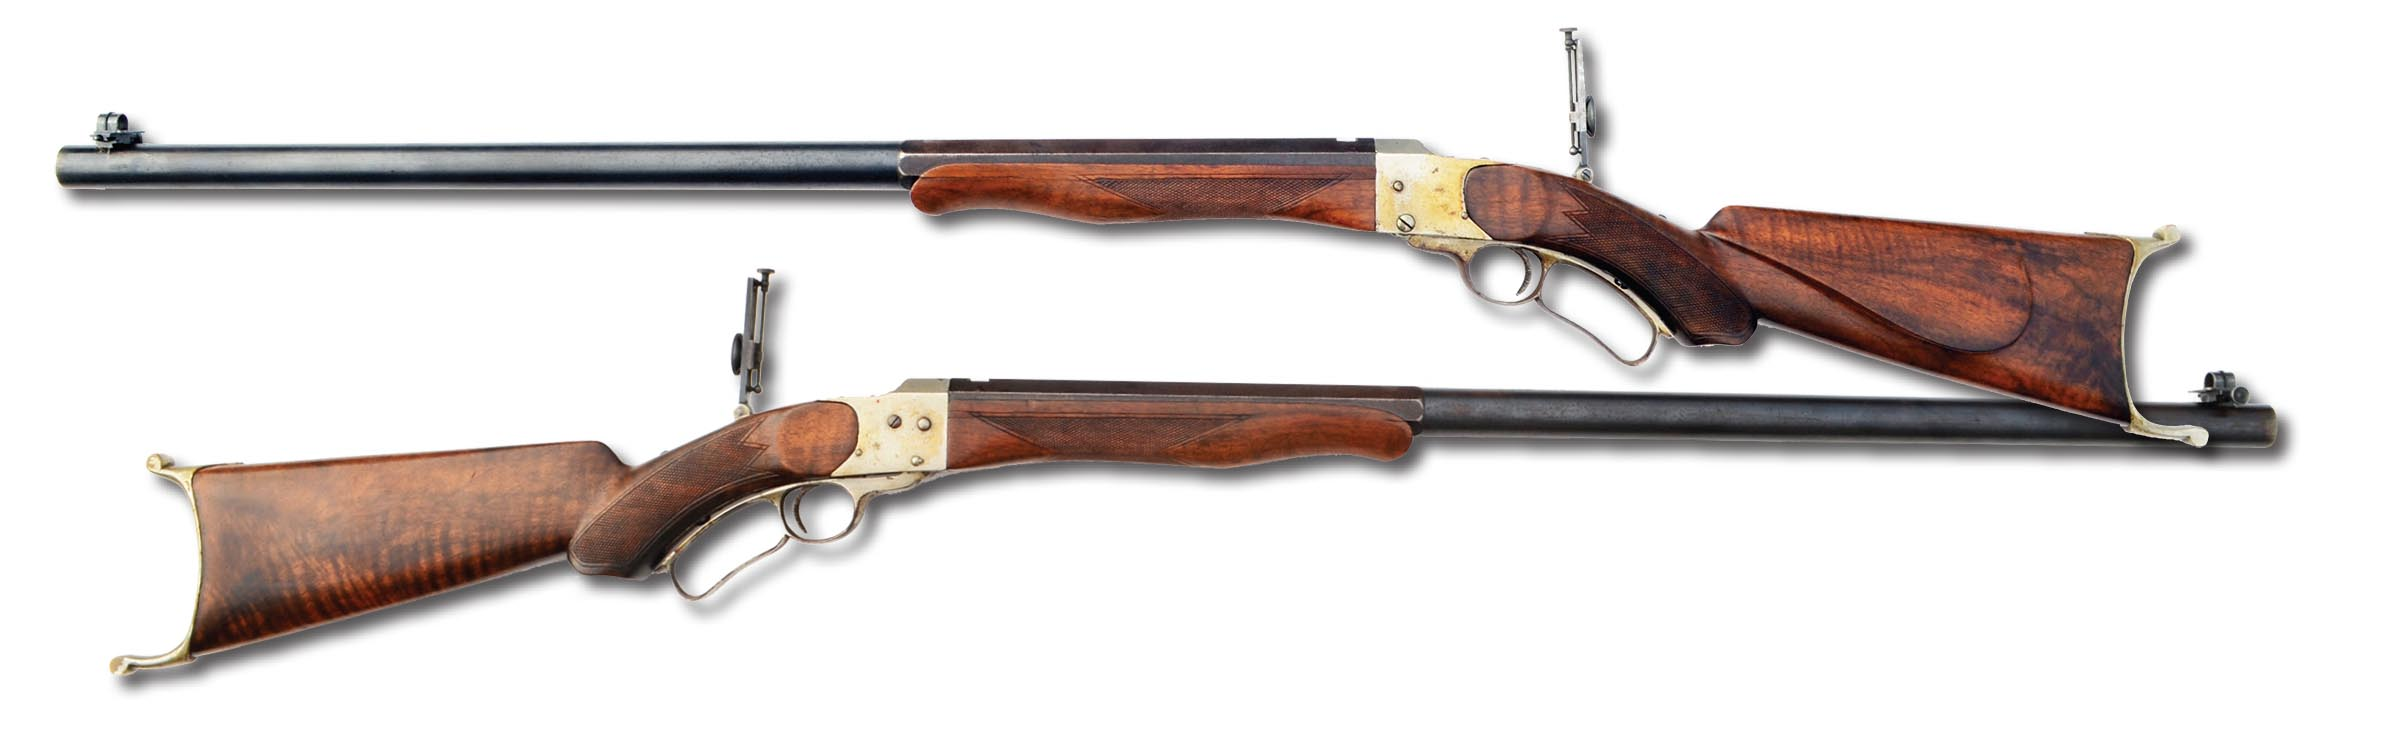 "A ""grade one"" Farrow rifle. The ""grade two"" had plainer walnut and no checkering. The Farrow was one of the sleekest and most graceful of all the American single shots and deserves to be more widely known than it is."